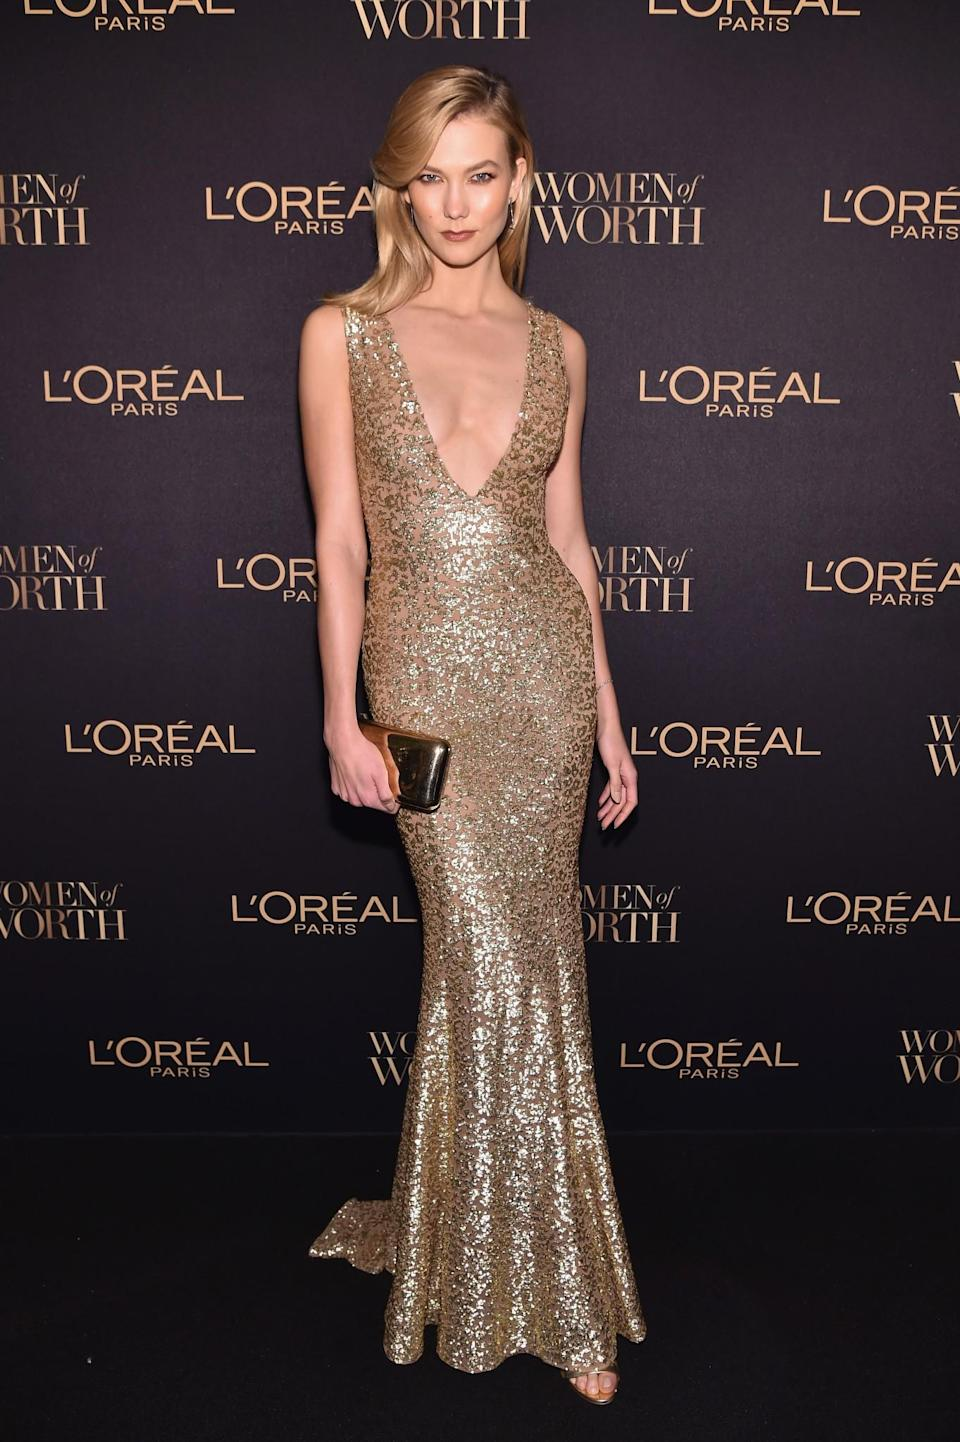 <p>Karlie slipped into a form-fitting Michael Kors dress for the beauty brand's red carpet event. <i>[Photo: Getty]</i> </p>